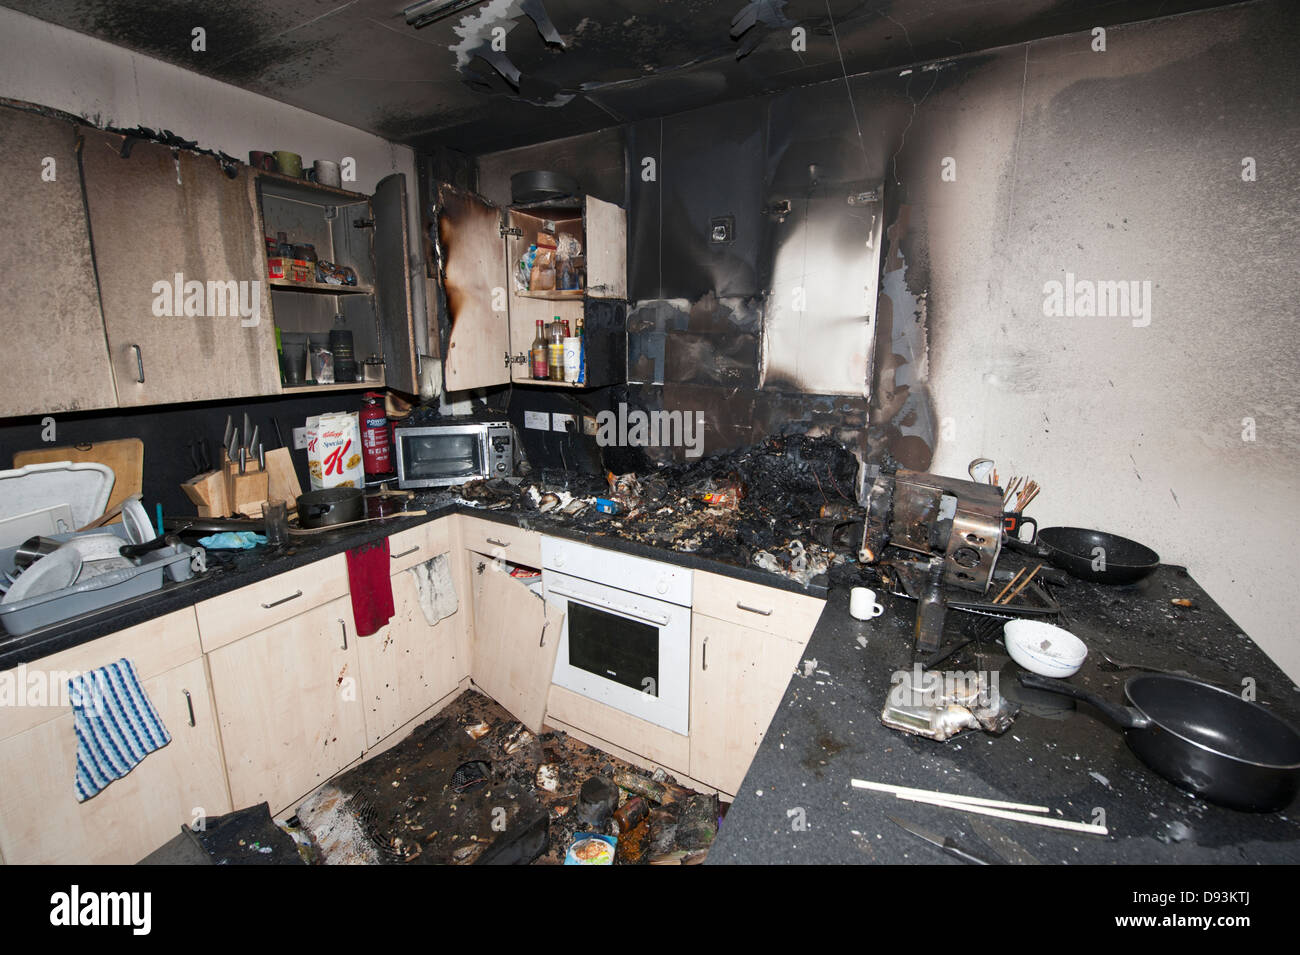 Student Flat Fire Halls Of residence Cooker Pan - Stock Image